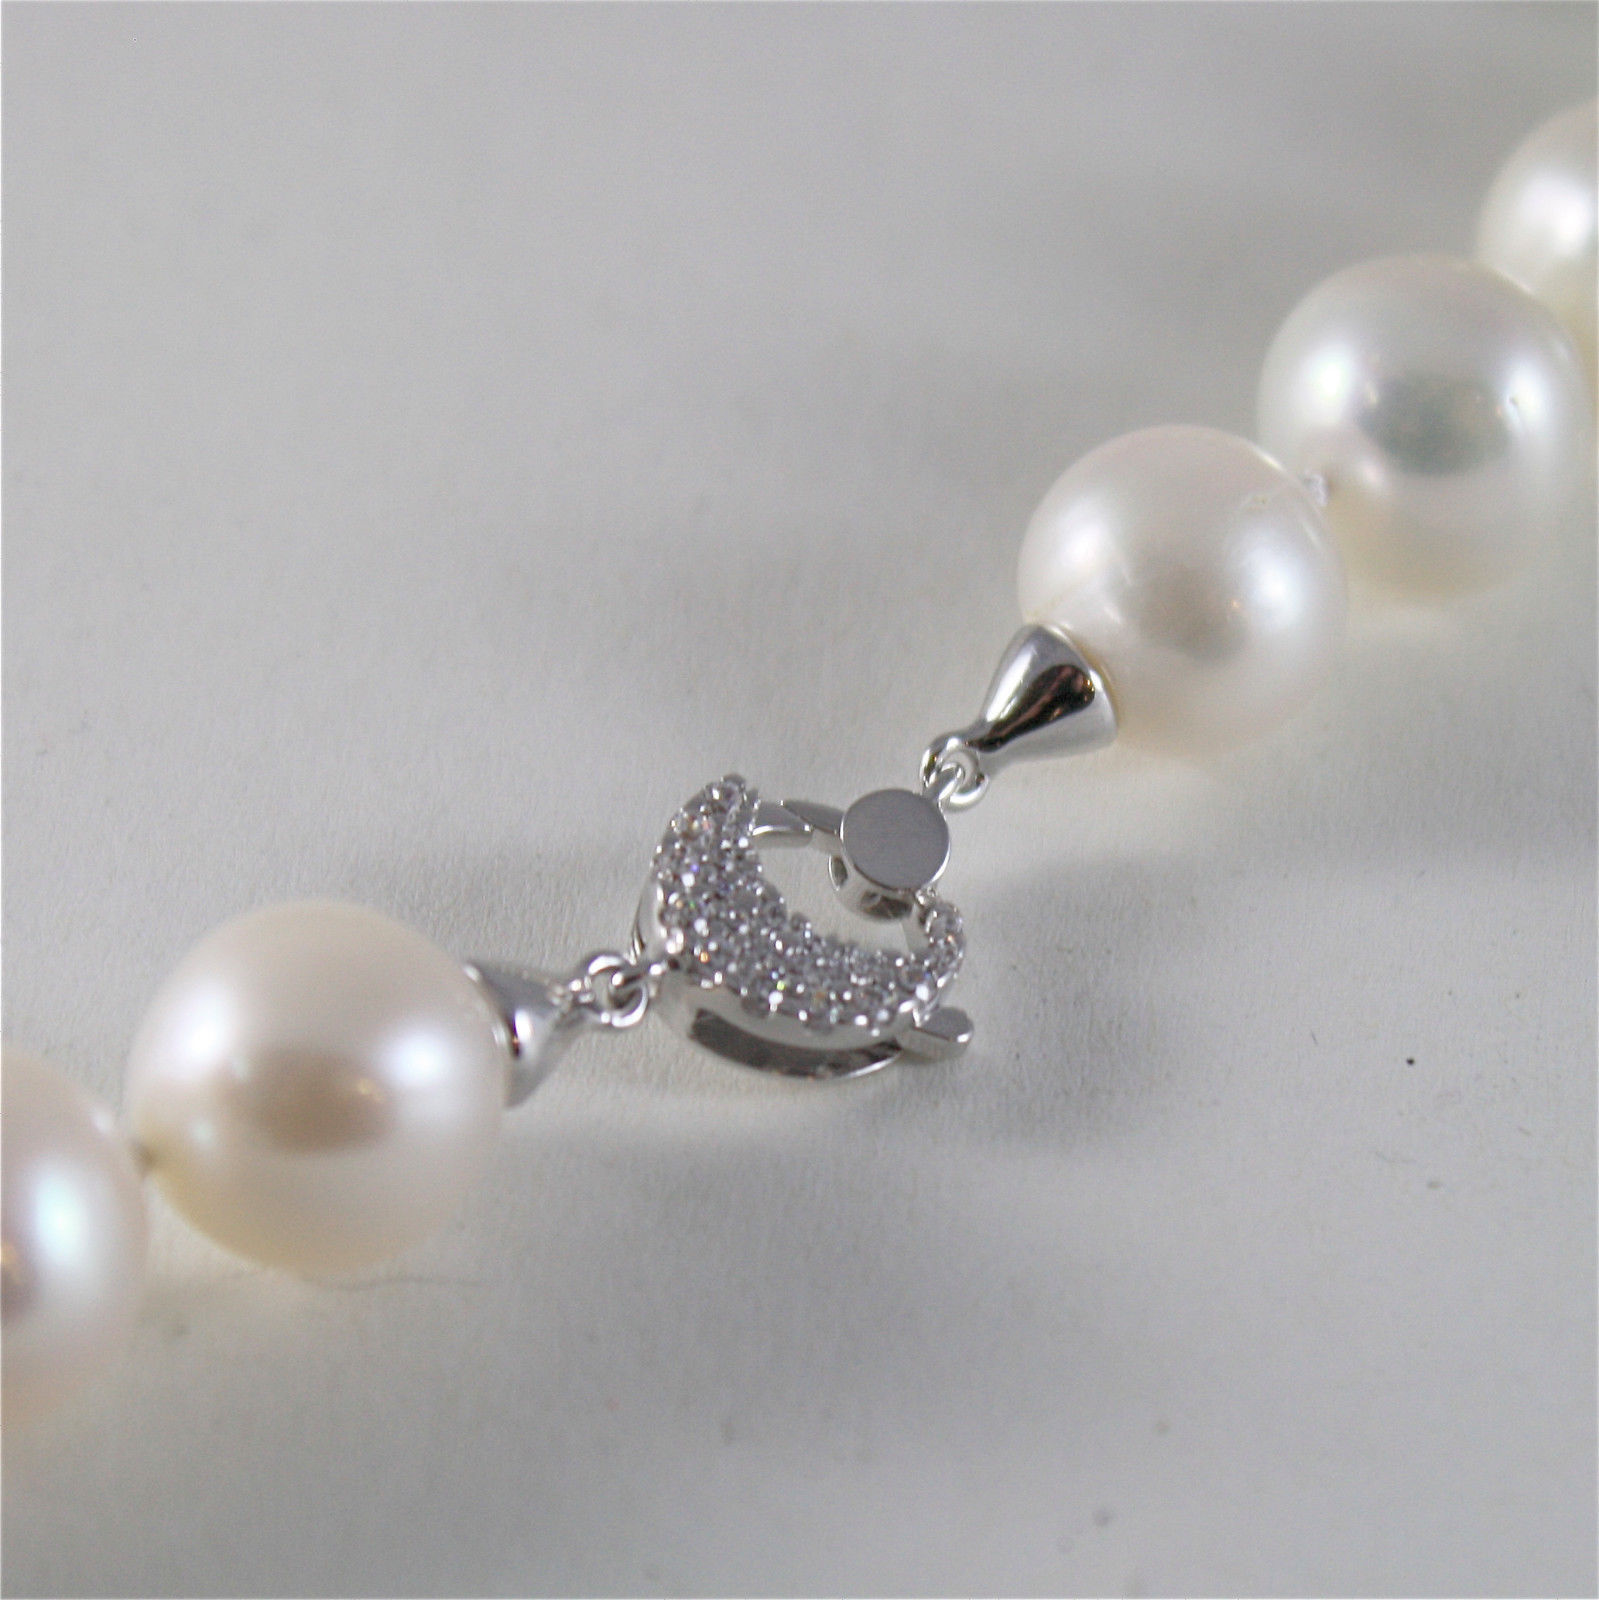 SOLID 18K WHITE GOLD NECKLACE WITH BIG LUSTER ROUND 12 MM PEARLS MADE IN ITALY